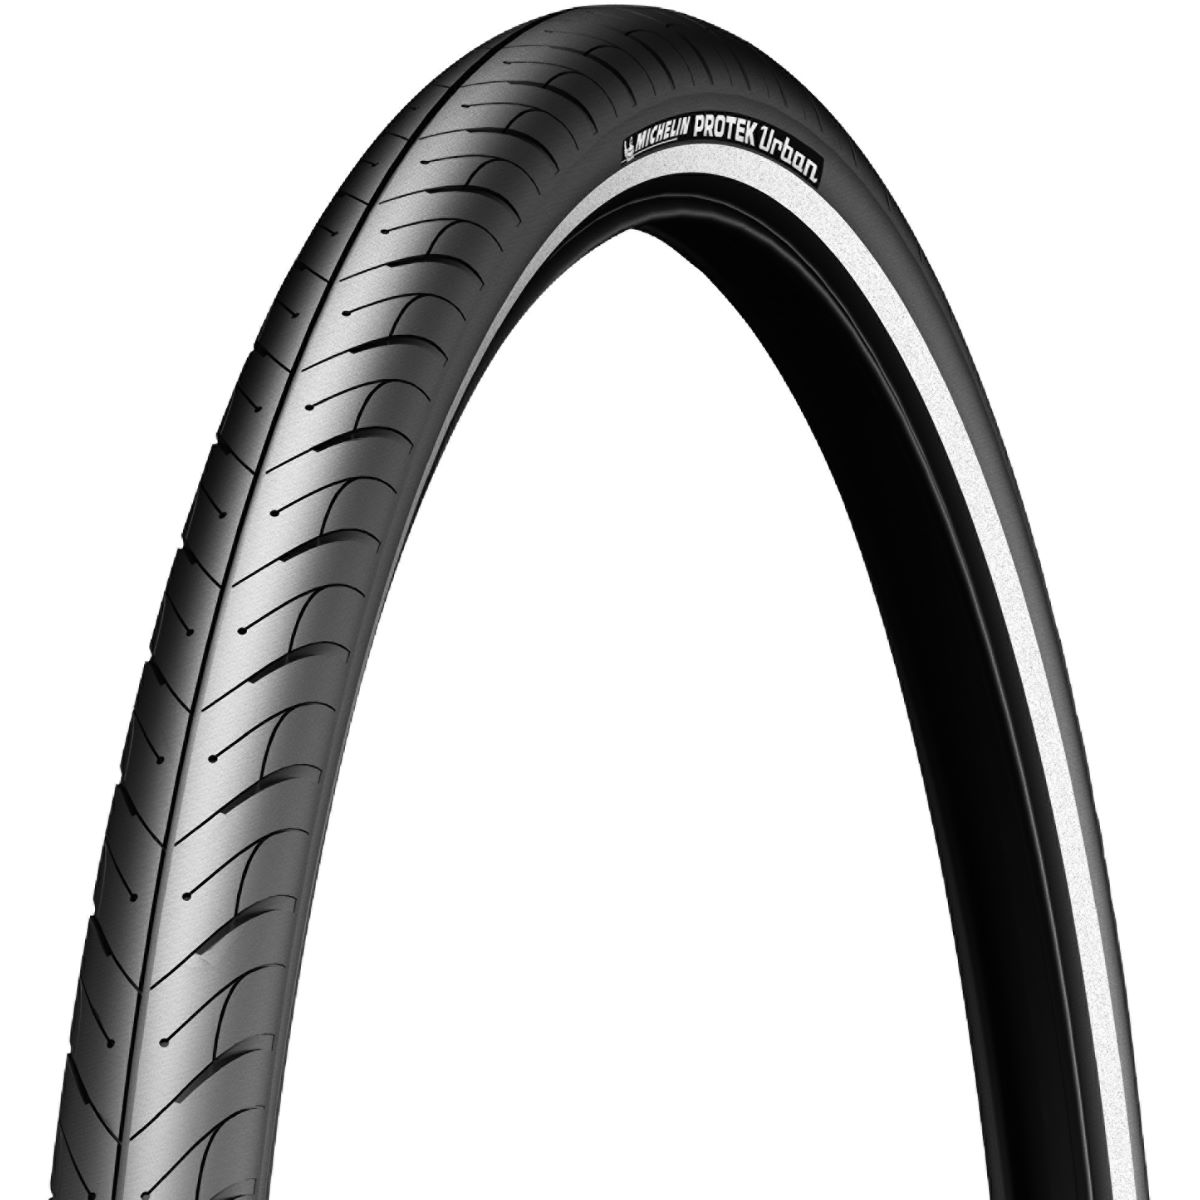 Pneu Michelin Protek Urban City - 700c 28c Wire Bead Noir